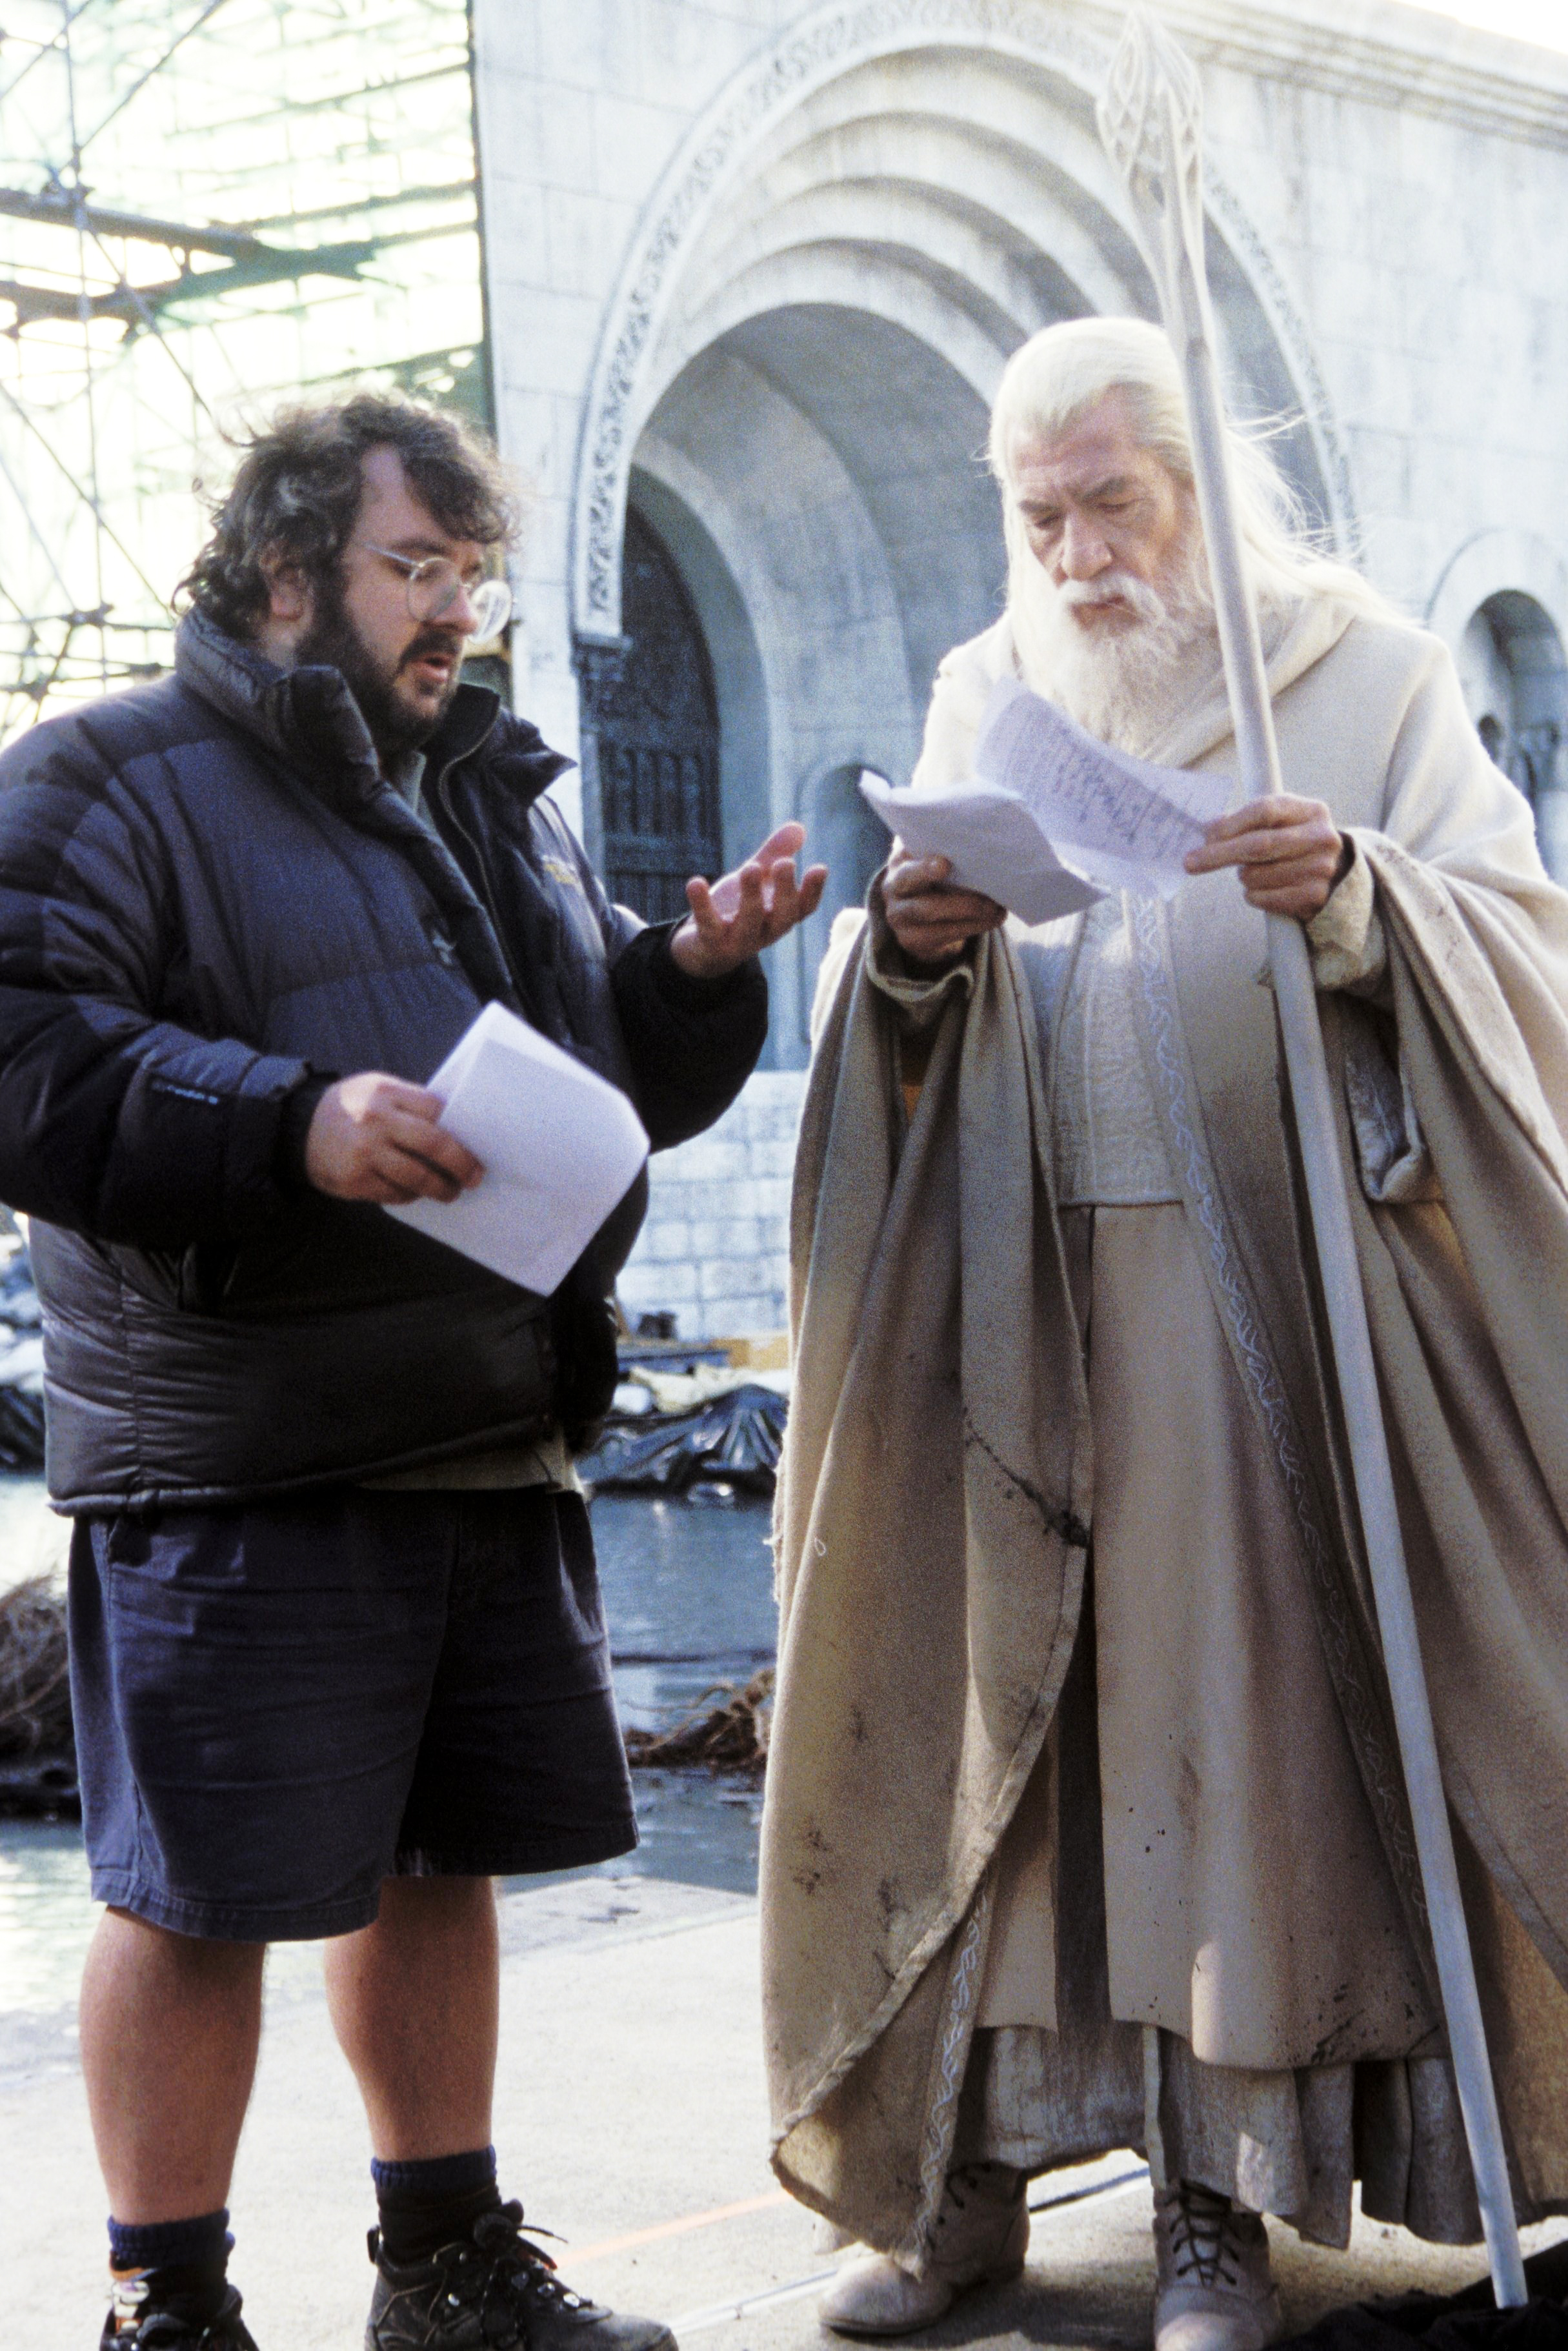 Peter Jackson and Ian McKellen filming The Lord of the Rings: The Return of the King, 2003.